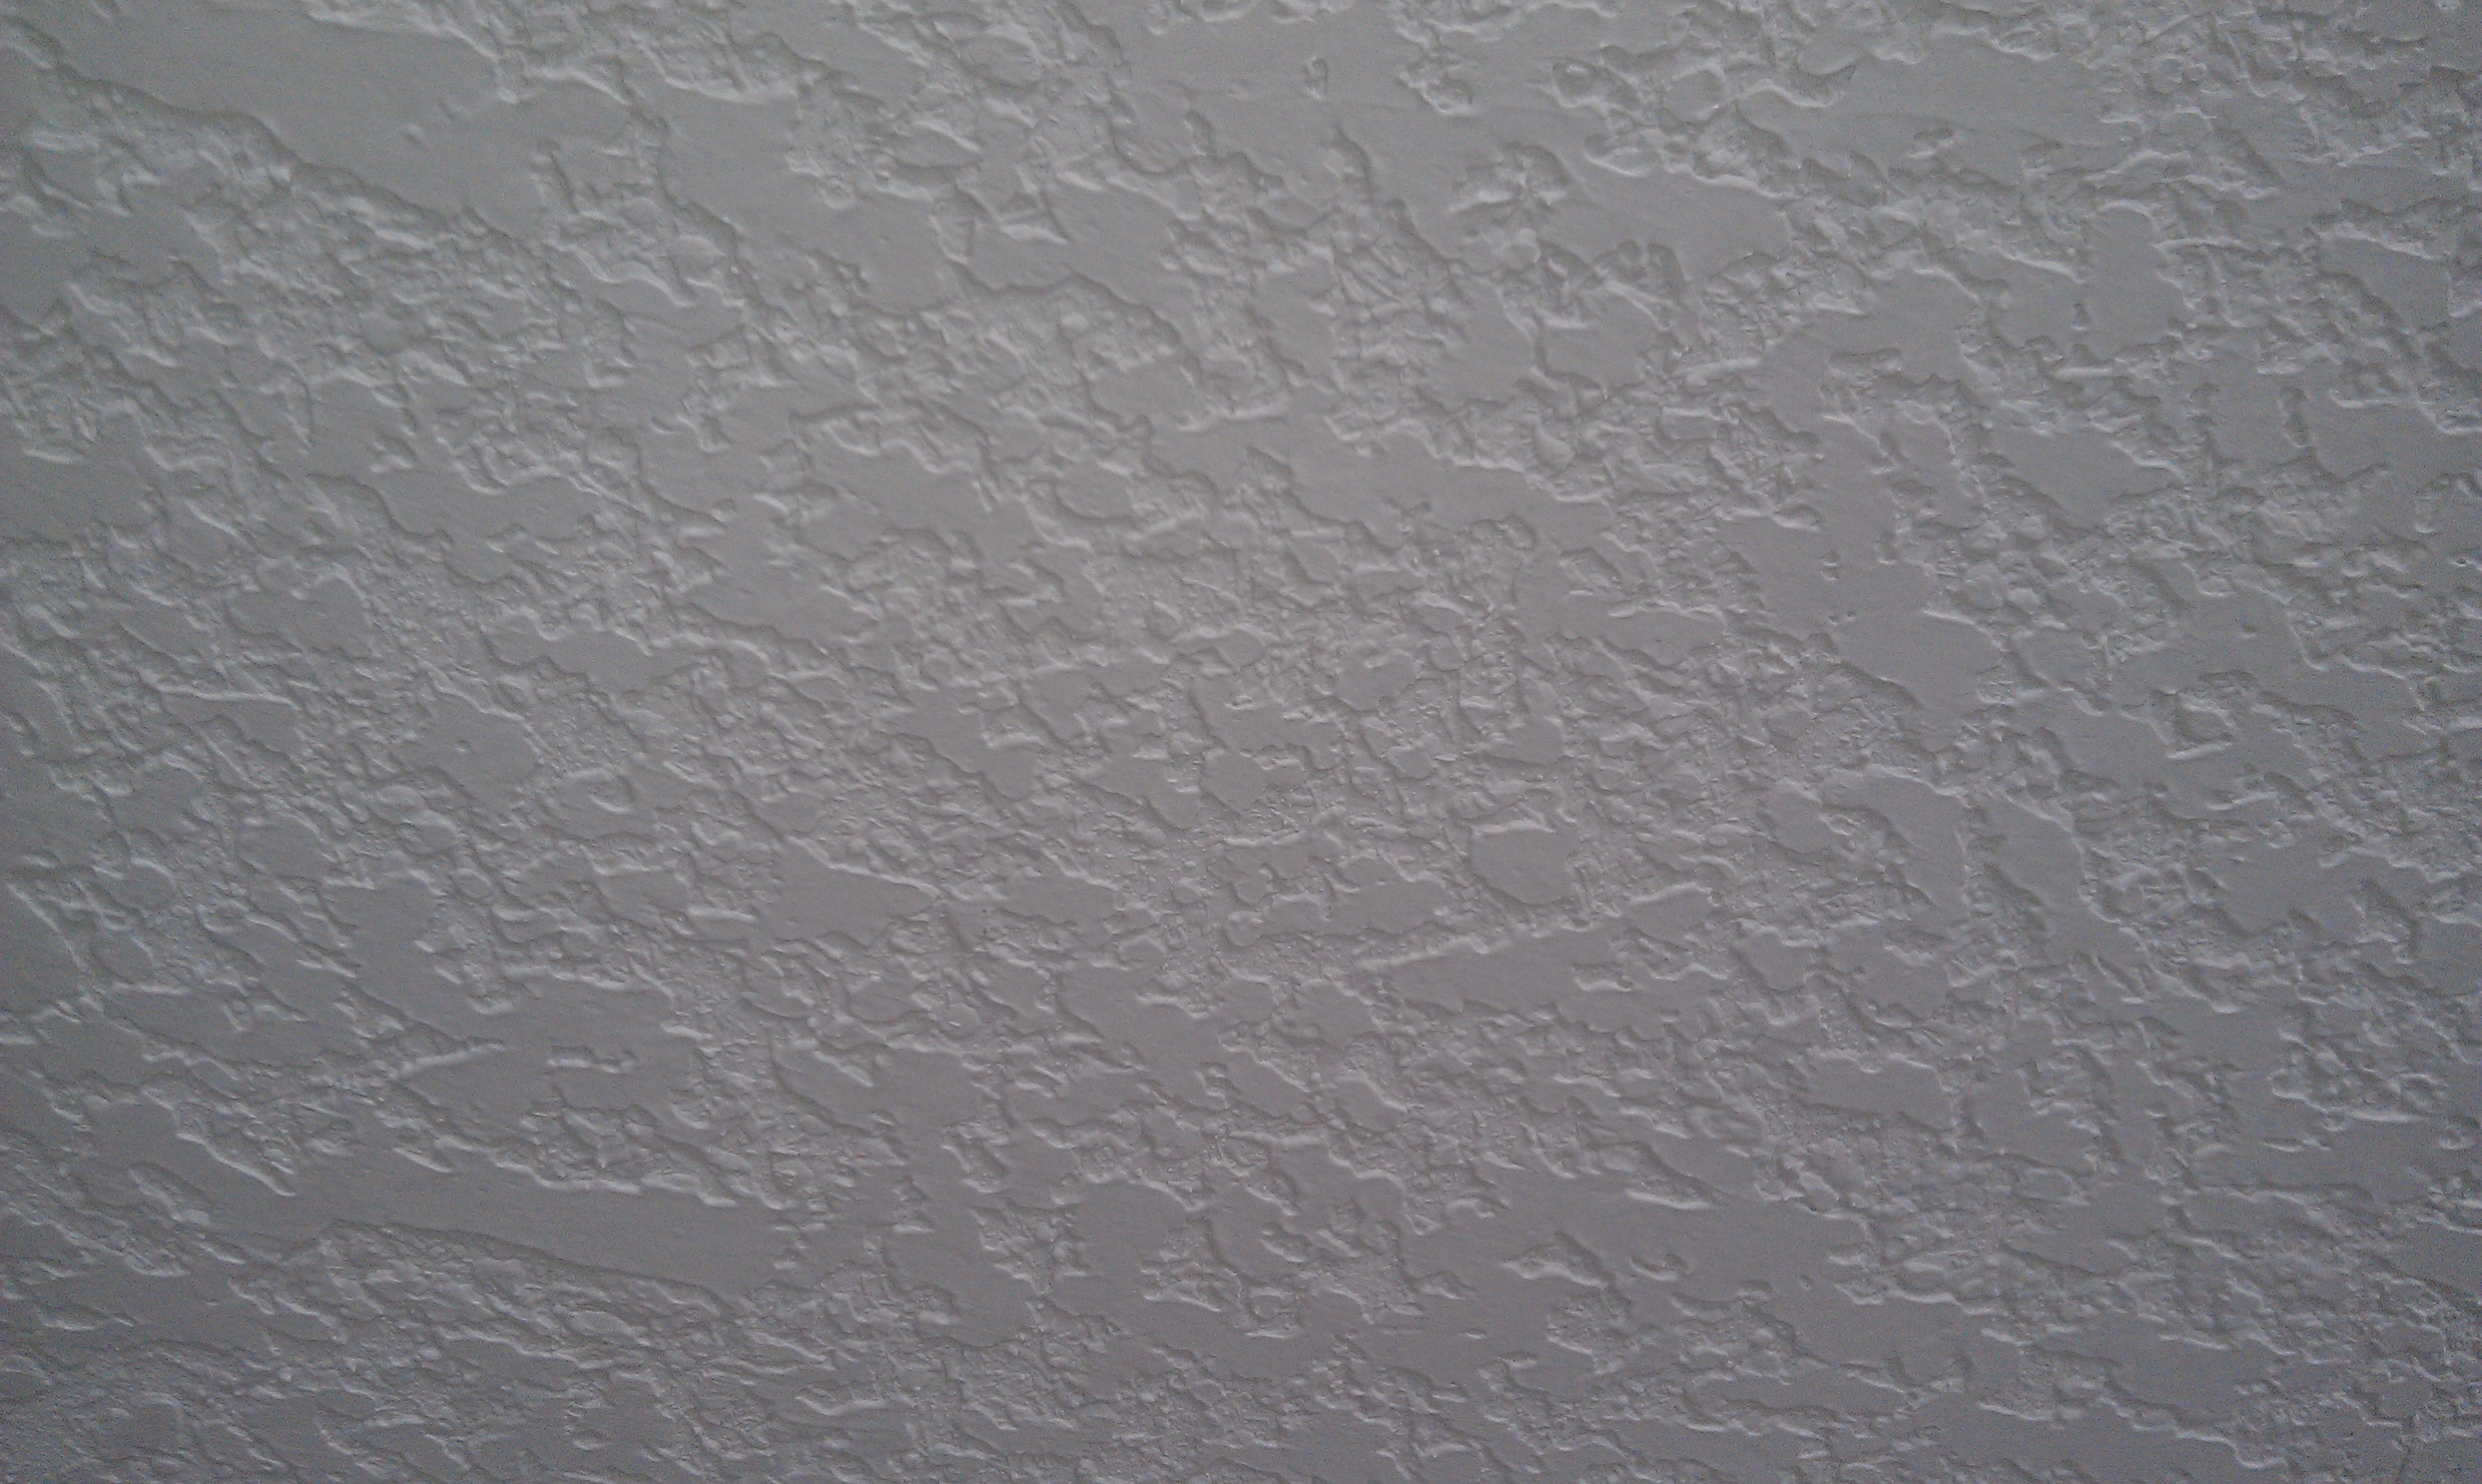 Wall textures for drywall from jacksonville carpenter for Popular drywall textures